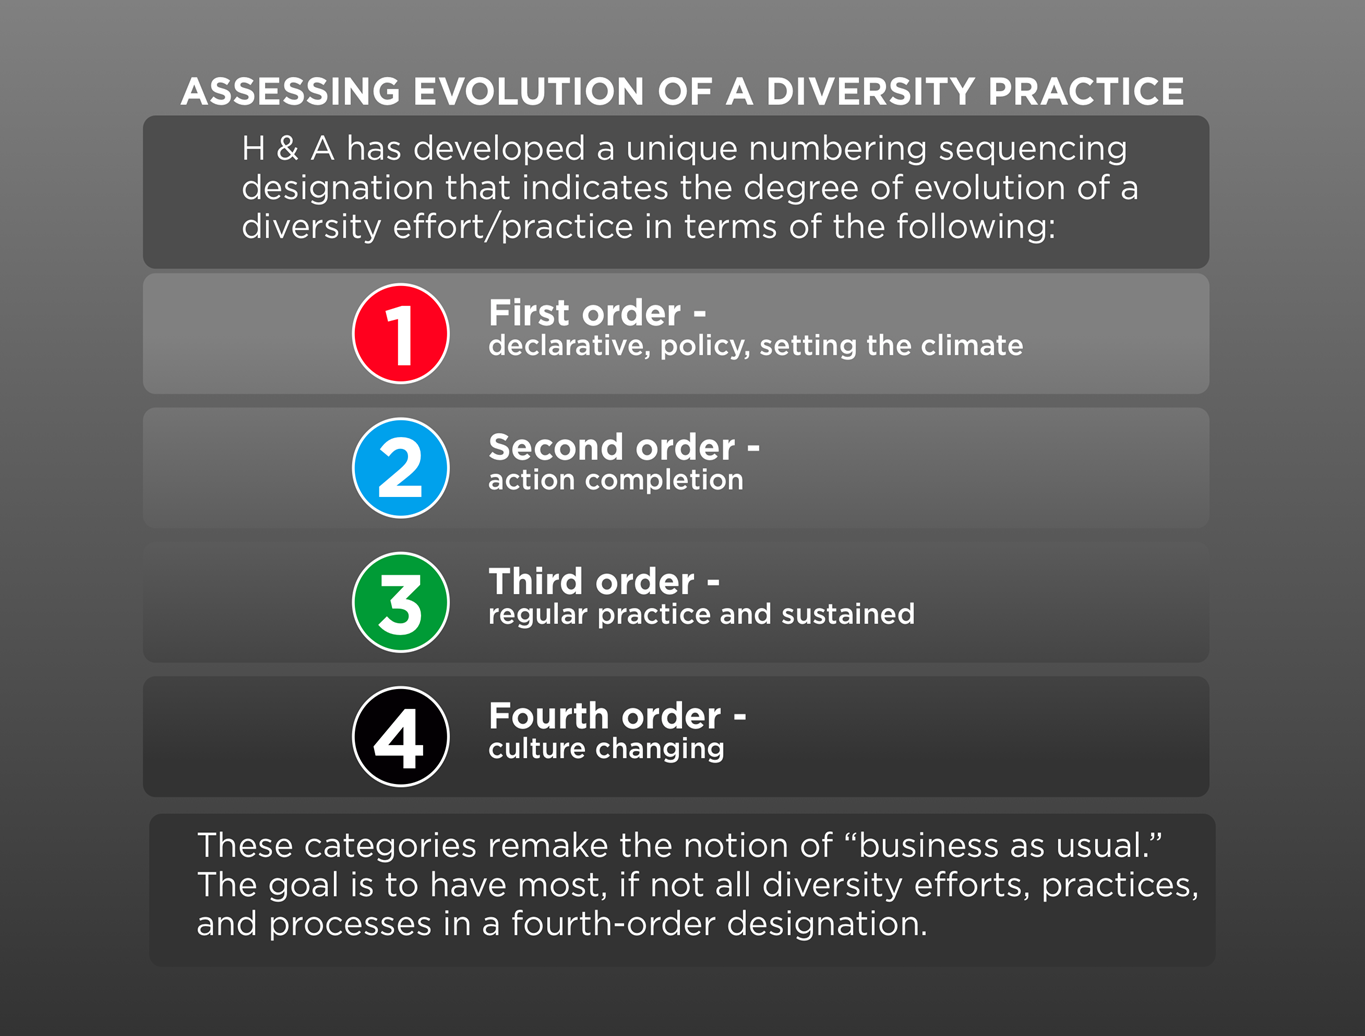 Assessing Evolution of a Diversity Practice.